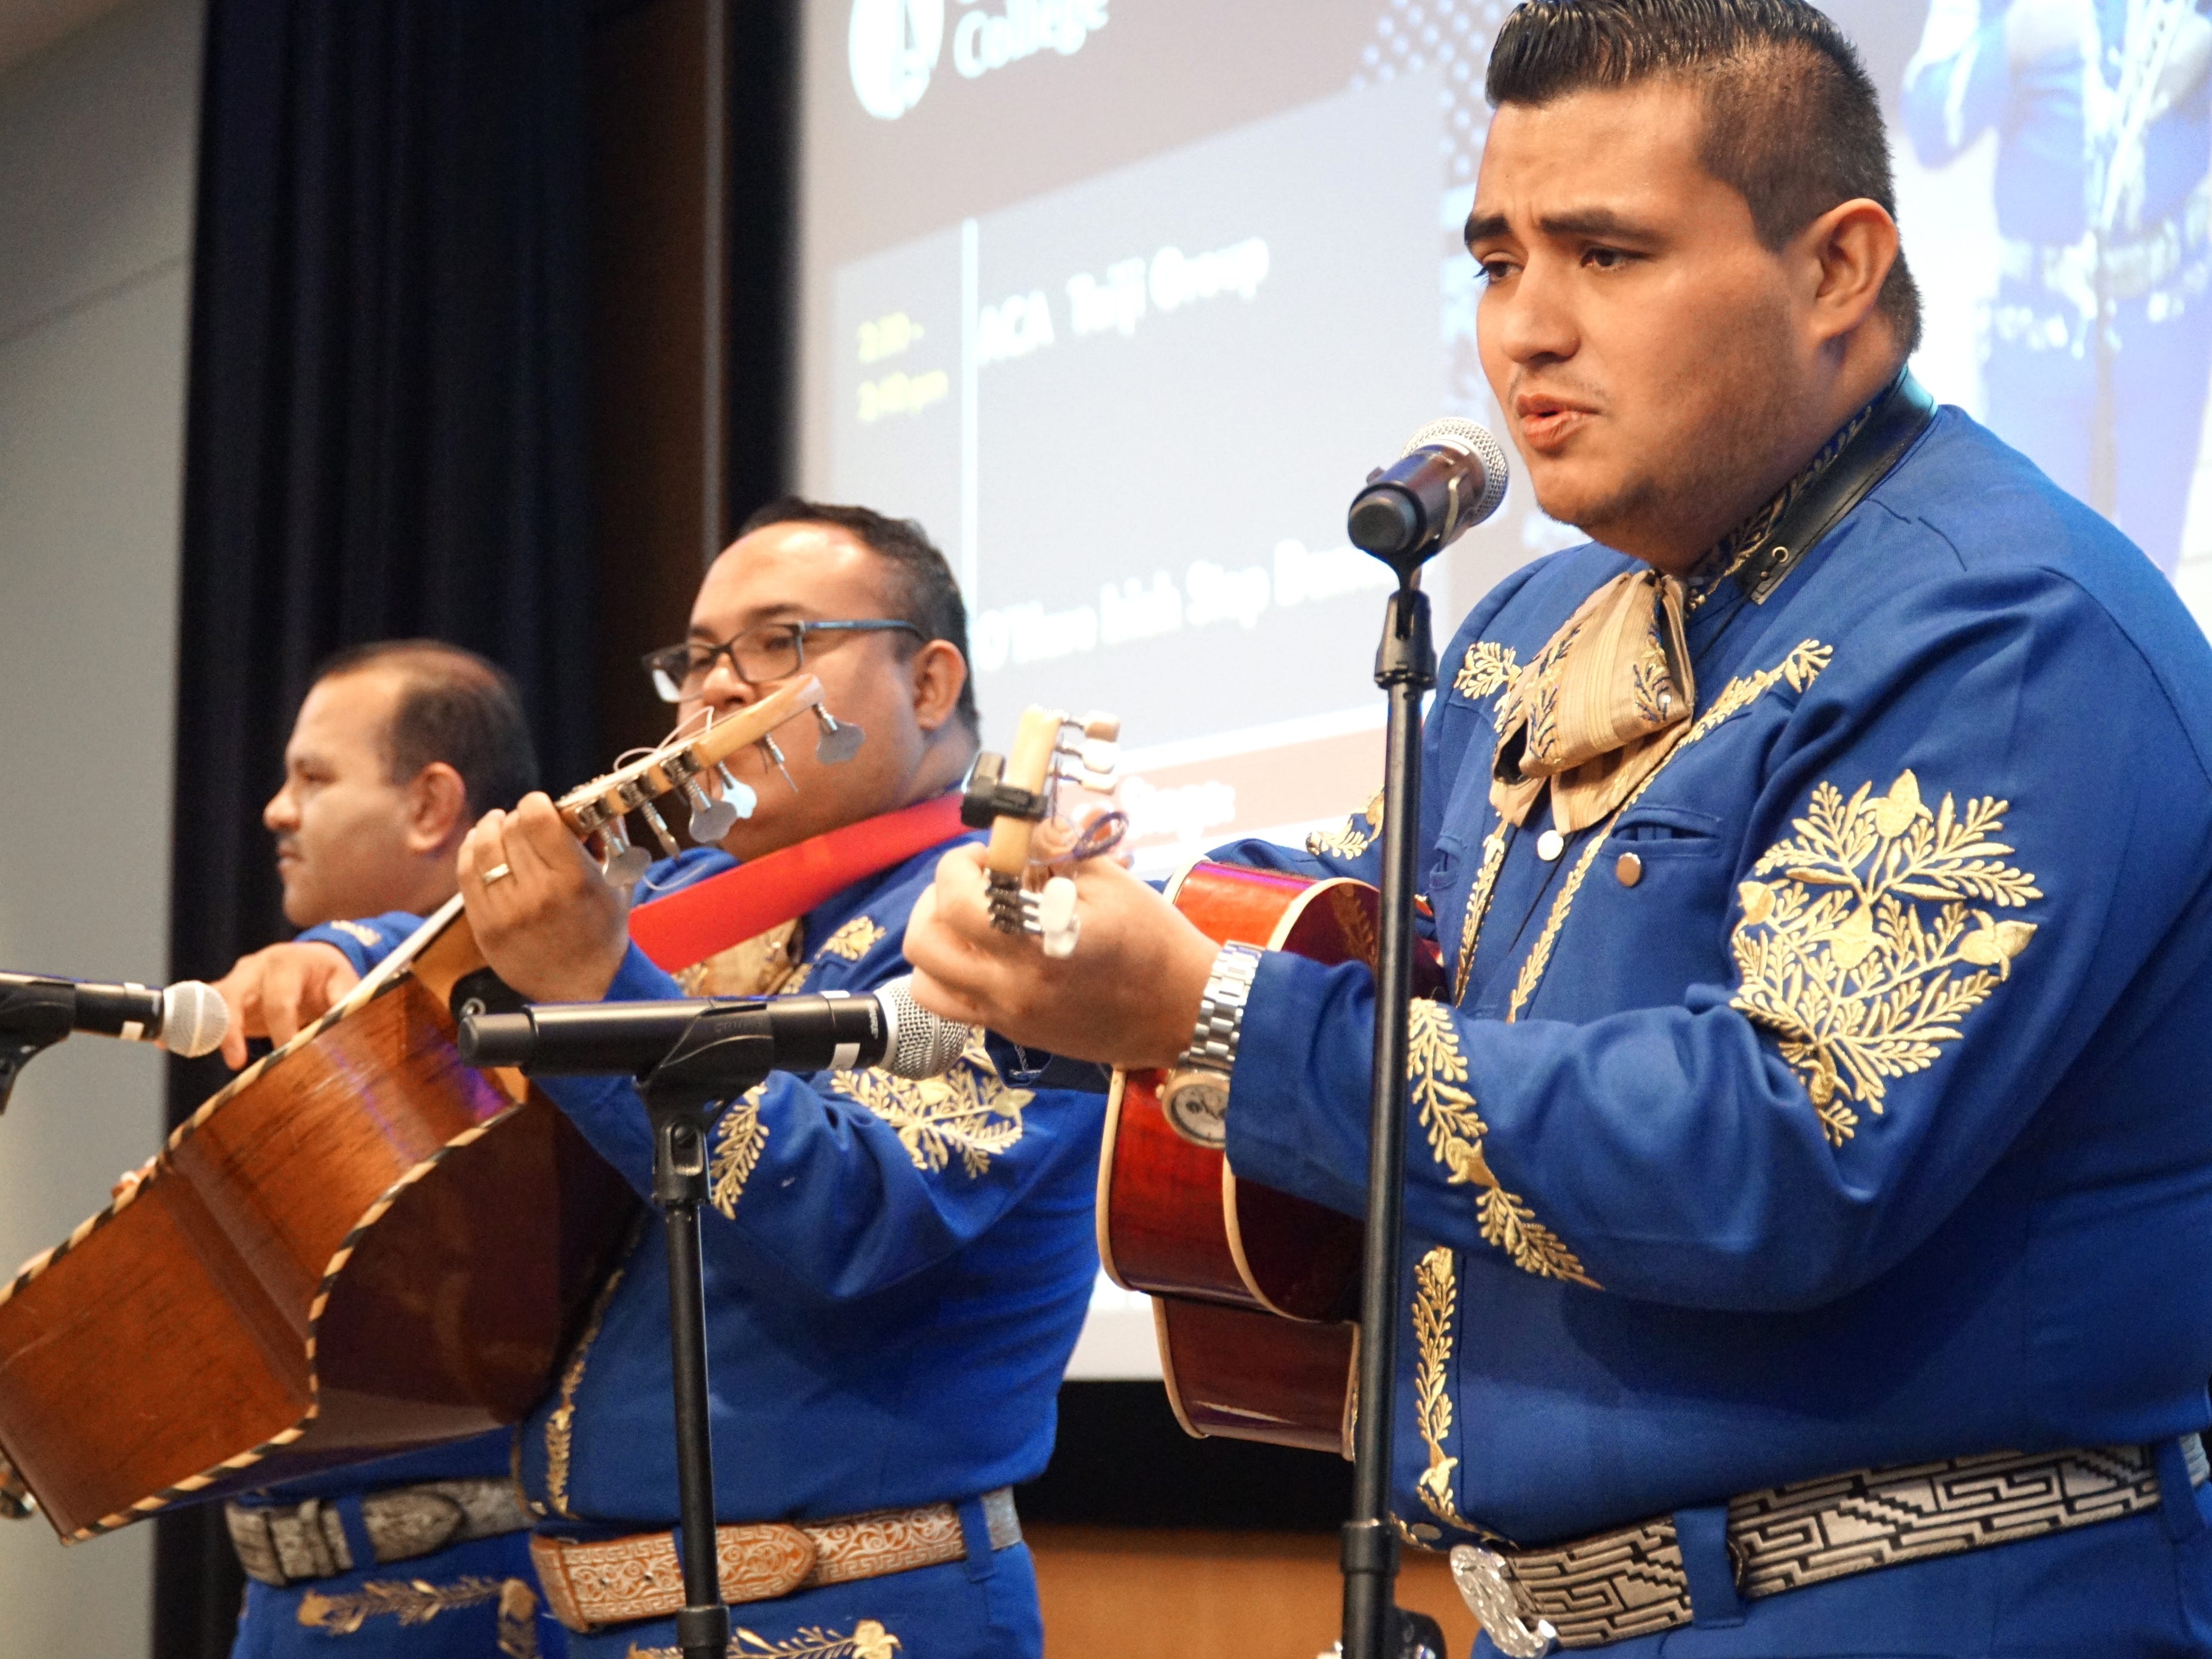 Roberto Pinzon, right, and other musicians from the Mariachi Jalisco Band, perform for the Multicultural Fair on March 28.